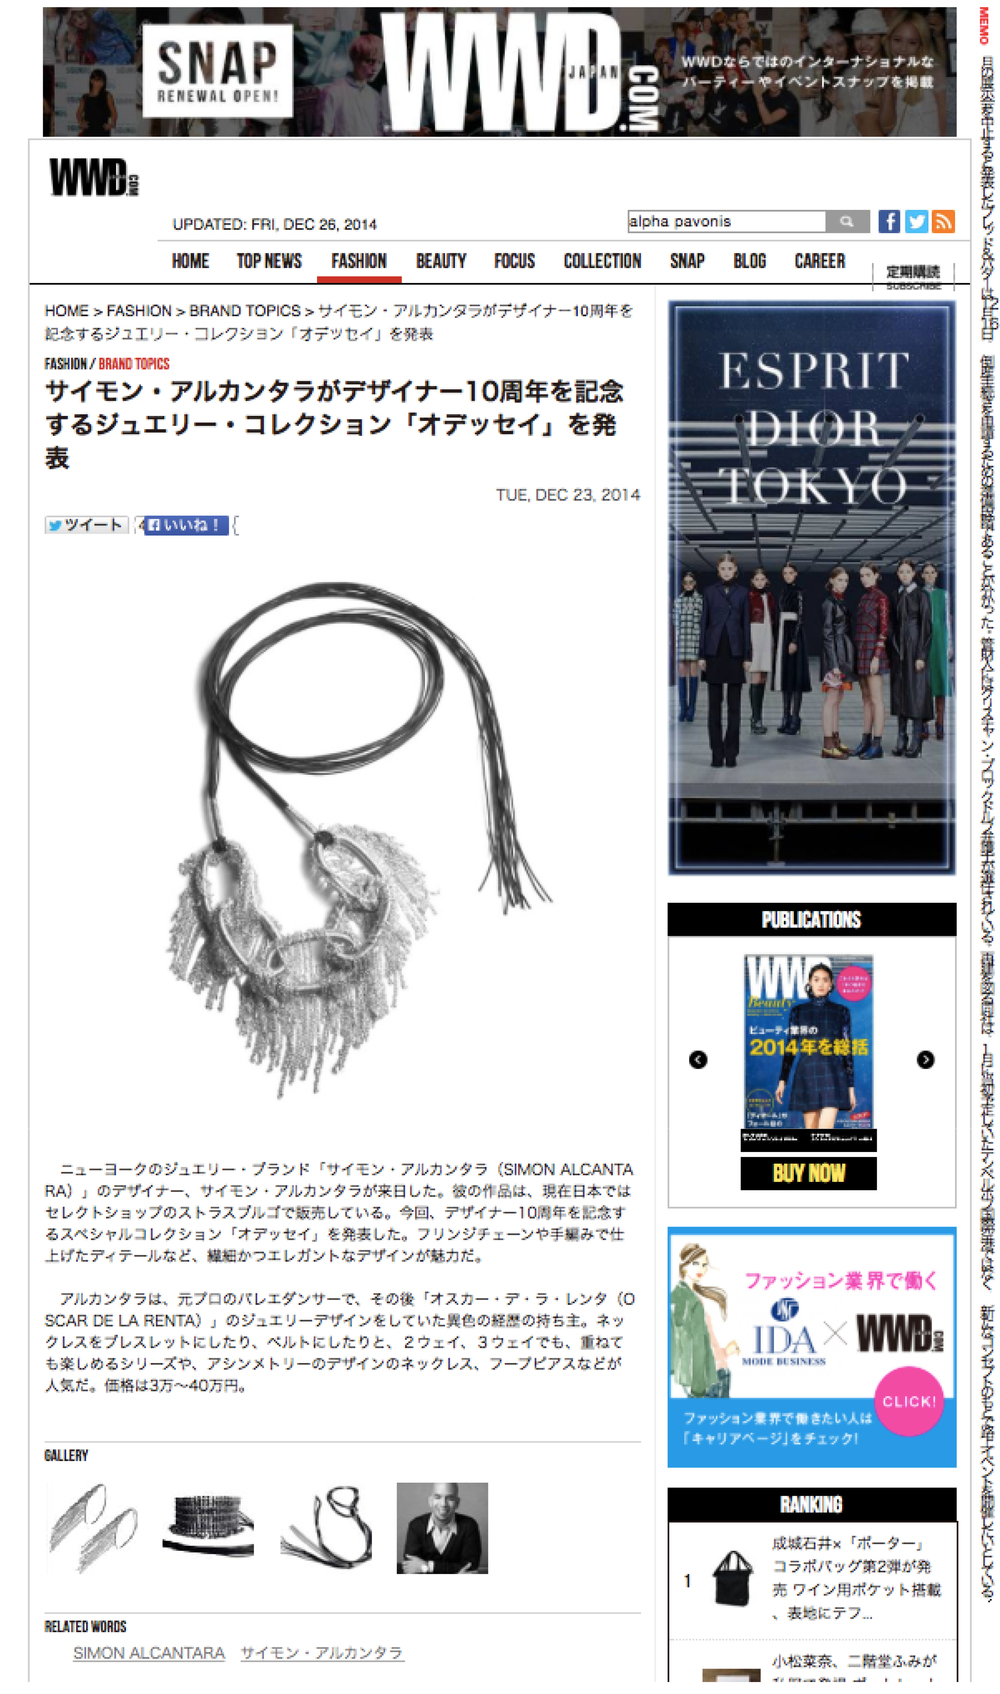 WWD Japan Dec 2014 coverage.jpg